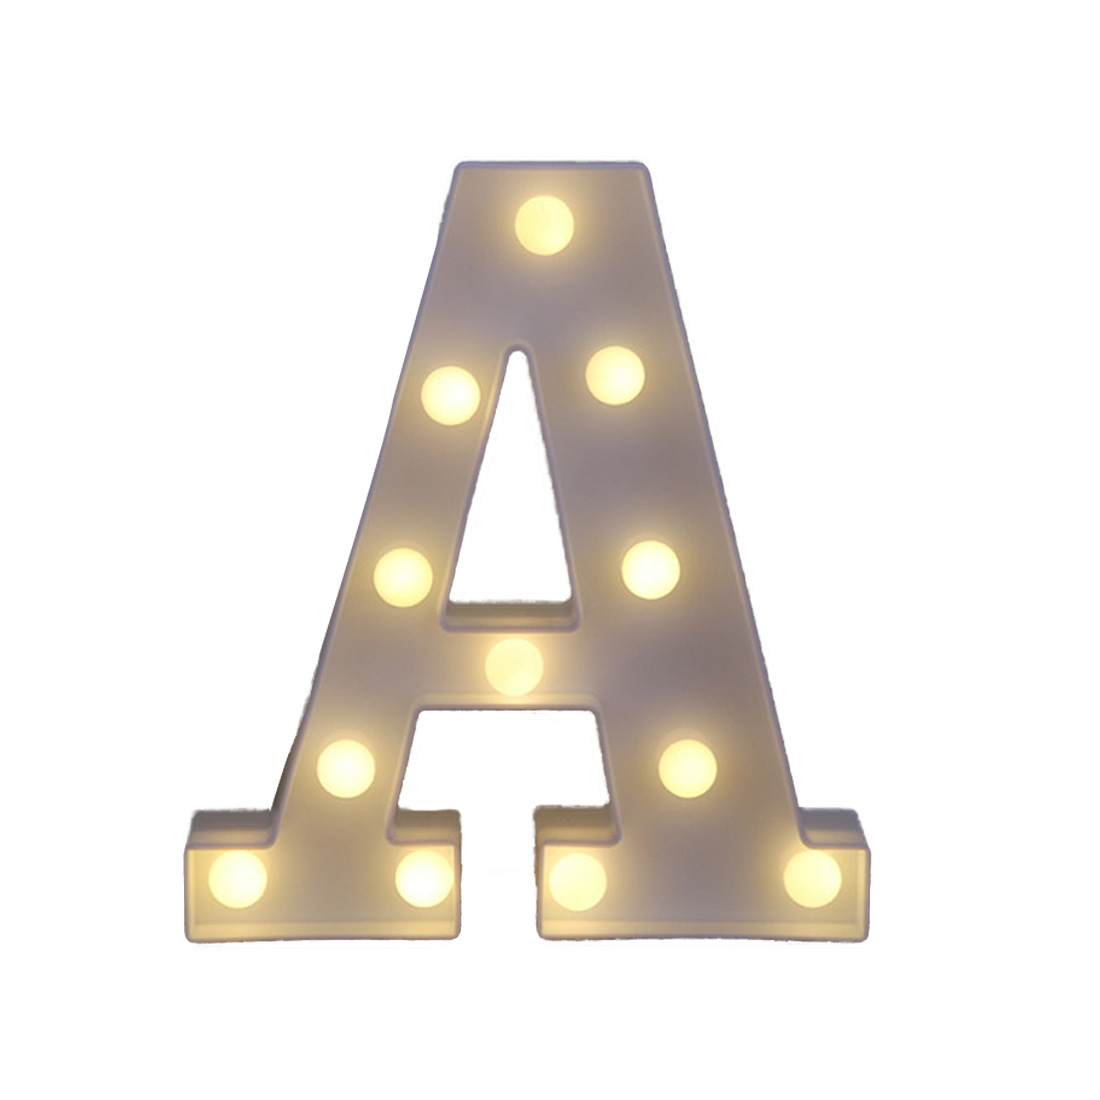 Hot 1pc White Plastic Letter LED Night Light Marquee Sign Alphabet Lights Lamp Home Club Wall Decor Valentine's Day Gift best price led night light lamp kids marquee letter light vintage alphabet circus style light up christmas lamp white 12inch